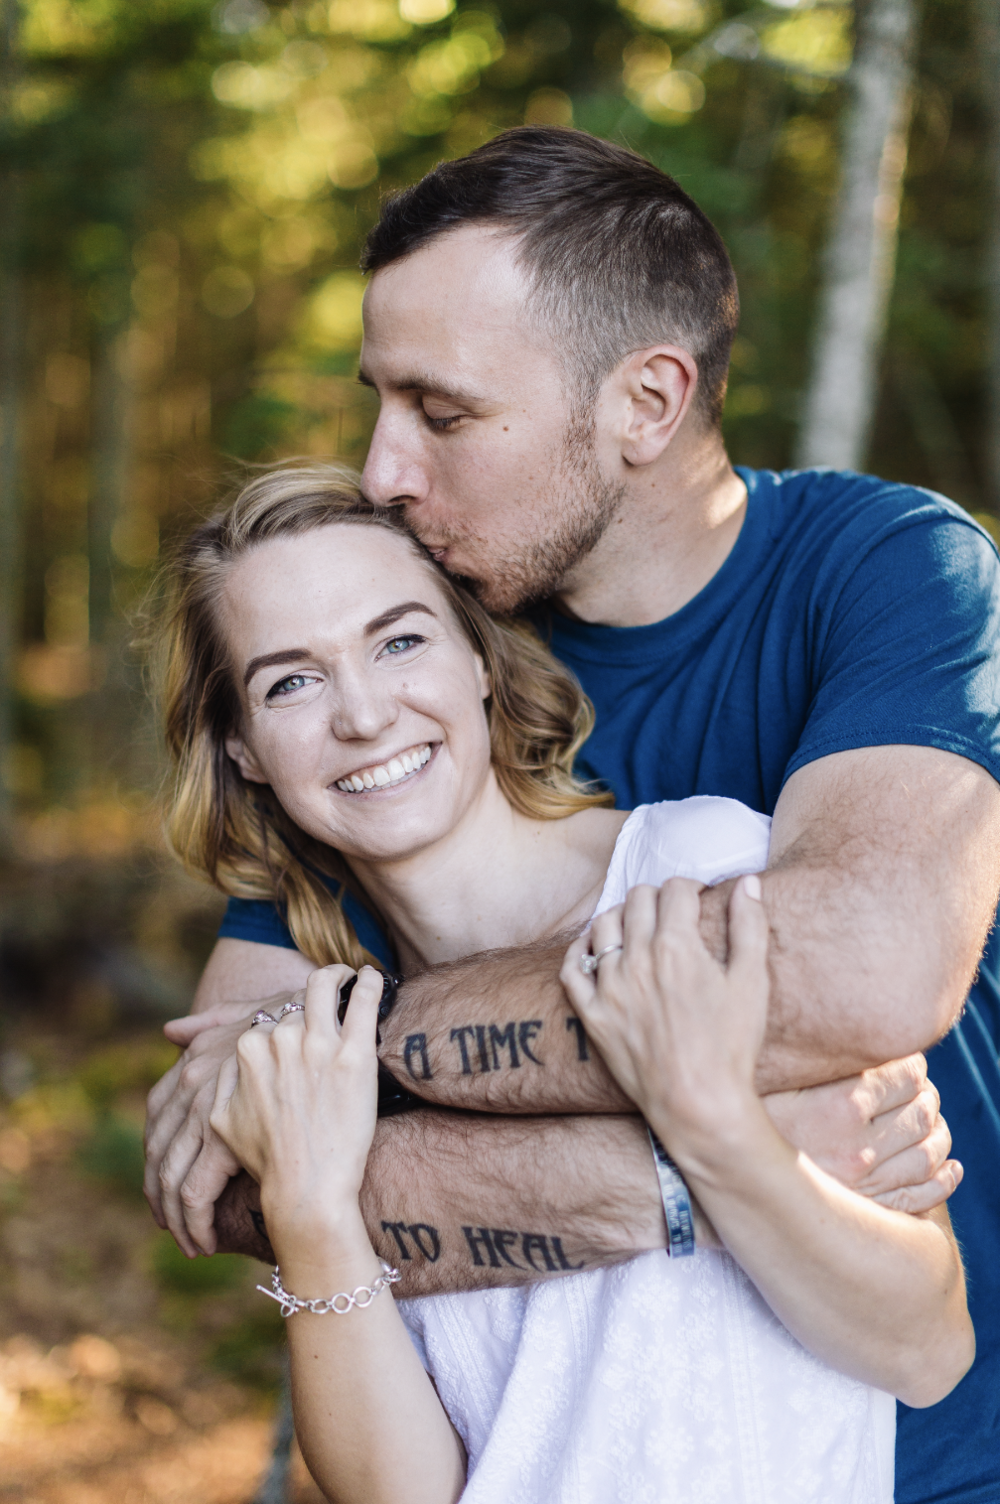 From Carly + Justin's engagement session.